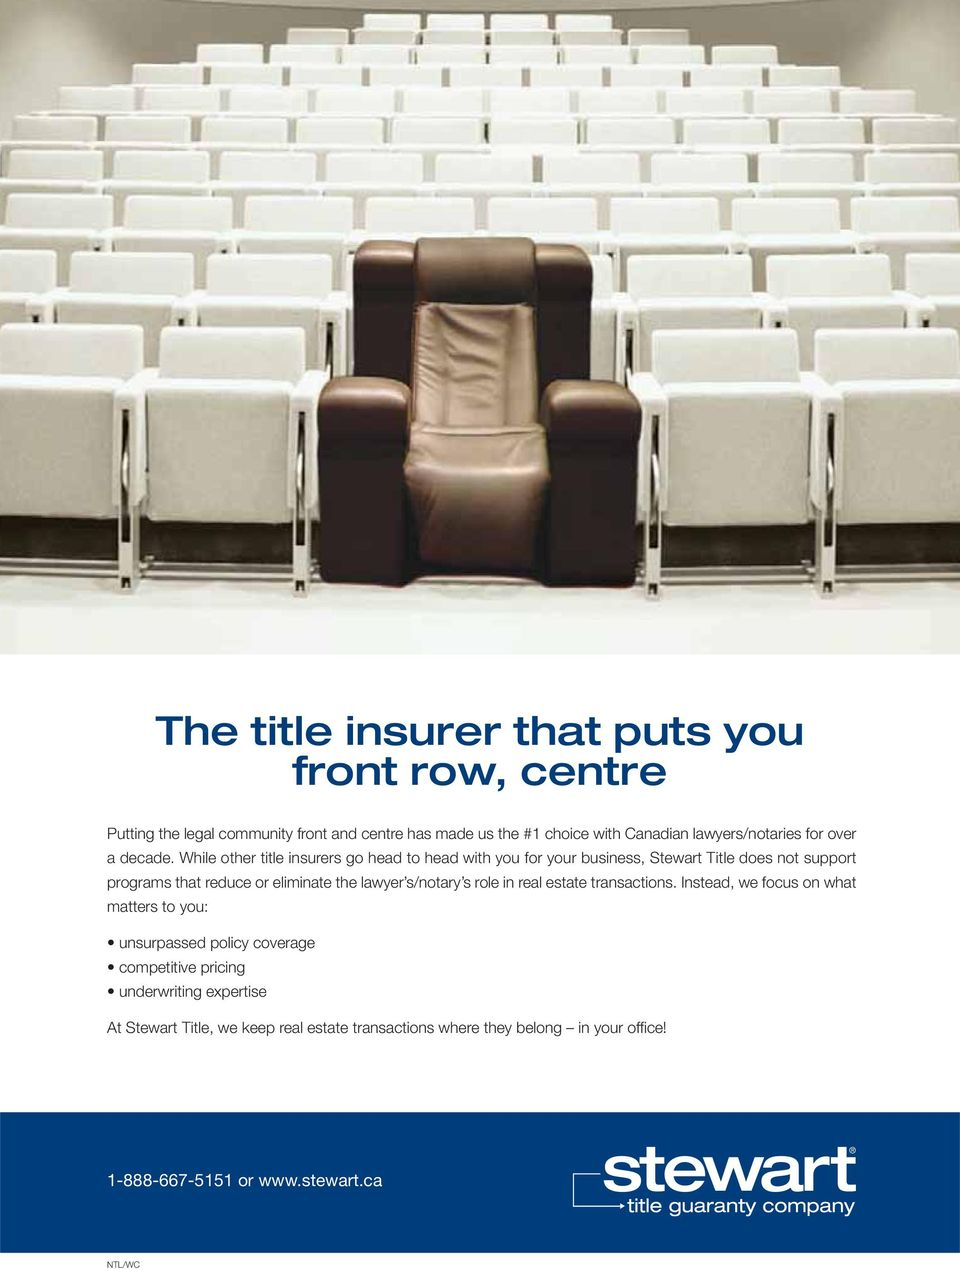 While other title insurers go head to head with you for your business, Stewart Title does not support programs that reduce or eliminate the lawyer